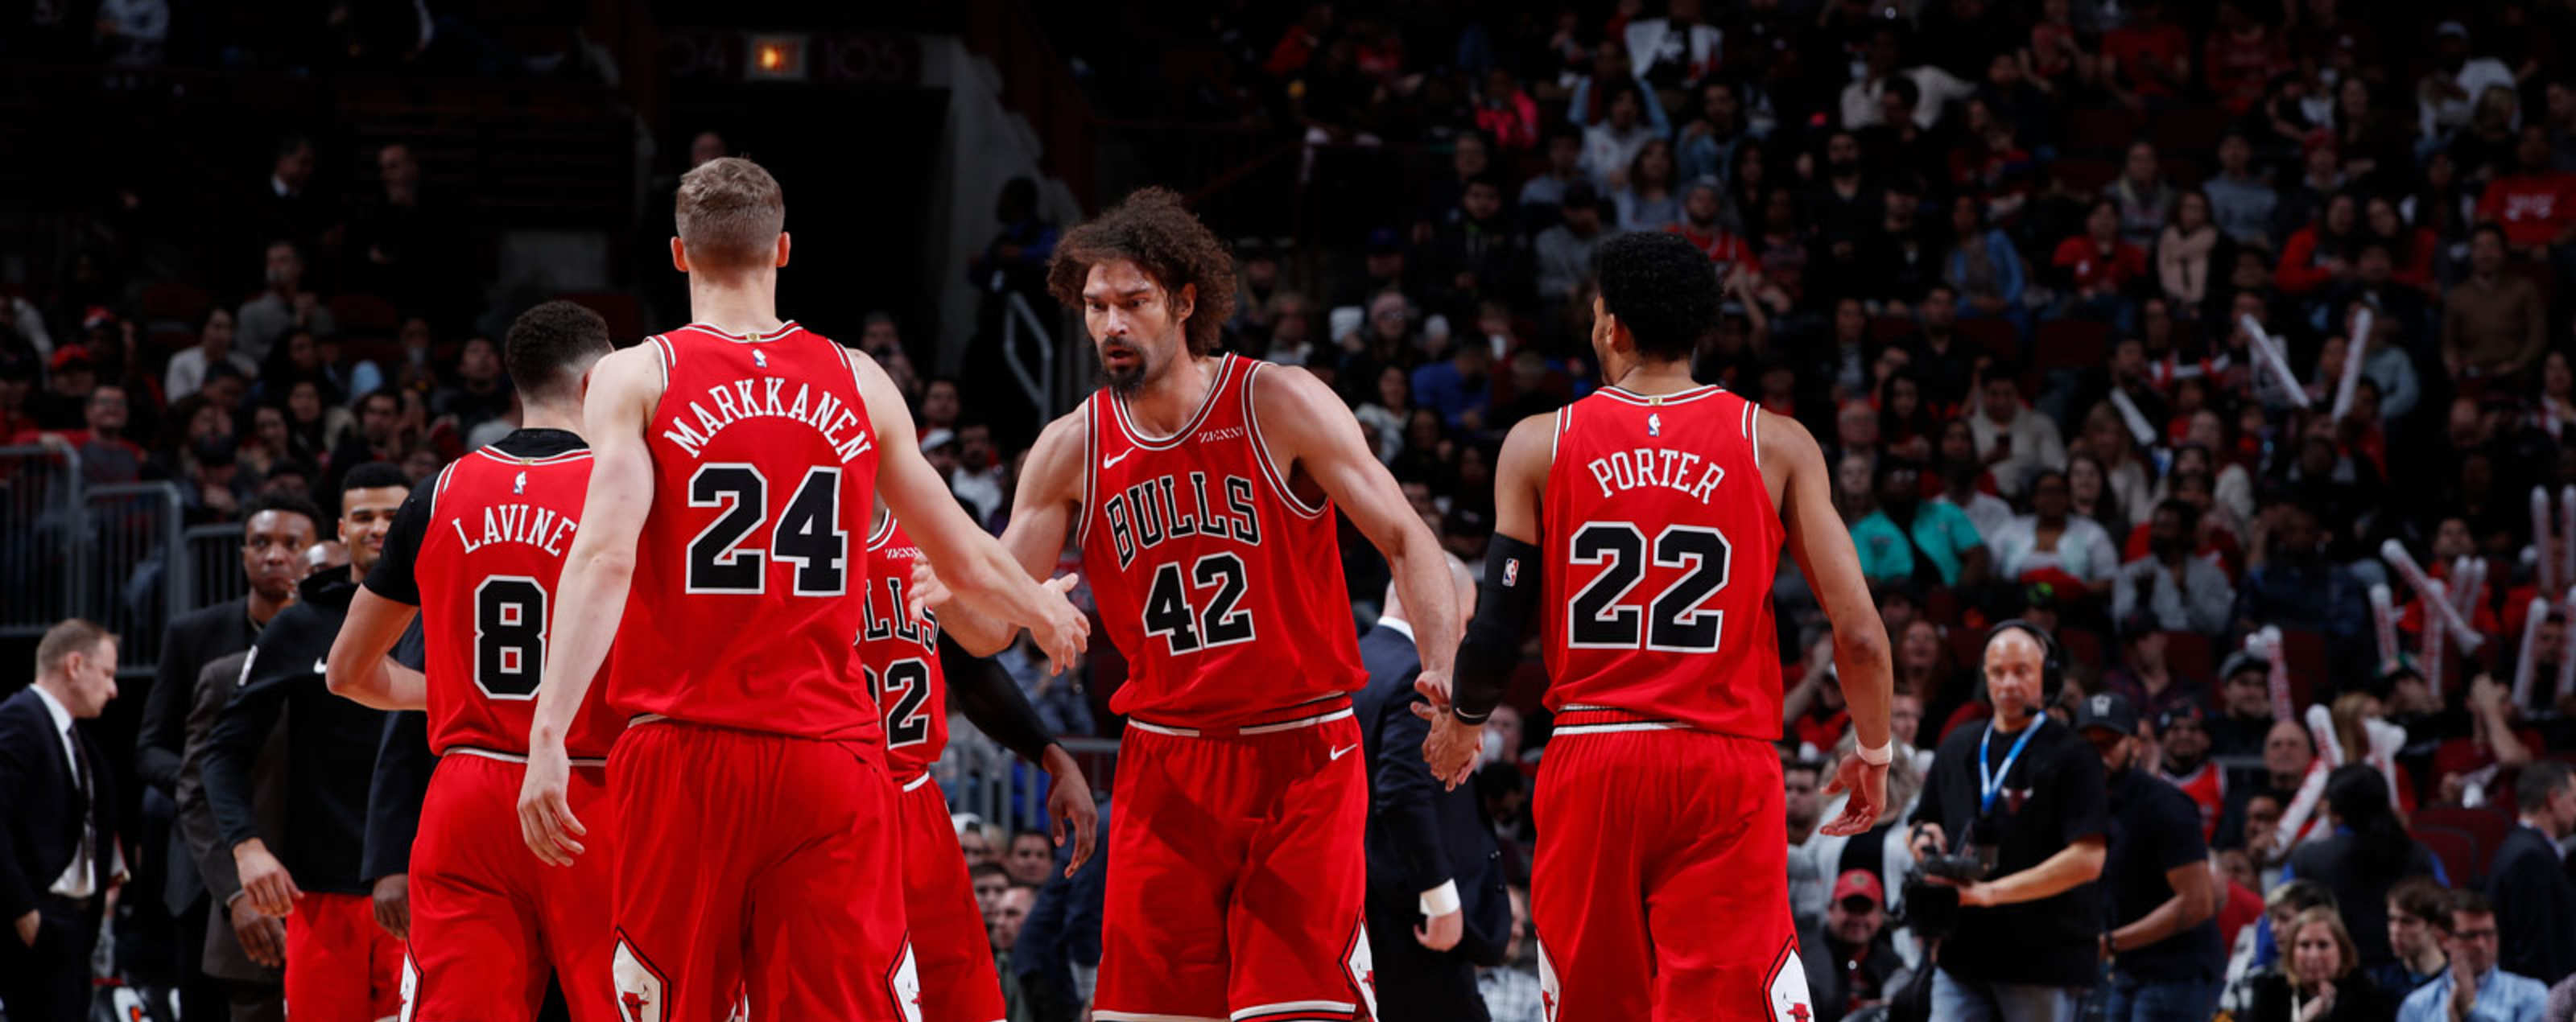 Lauri Markkanen high fives Robin Lopez during a game at the United Center.